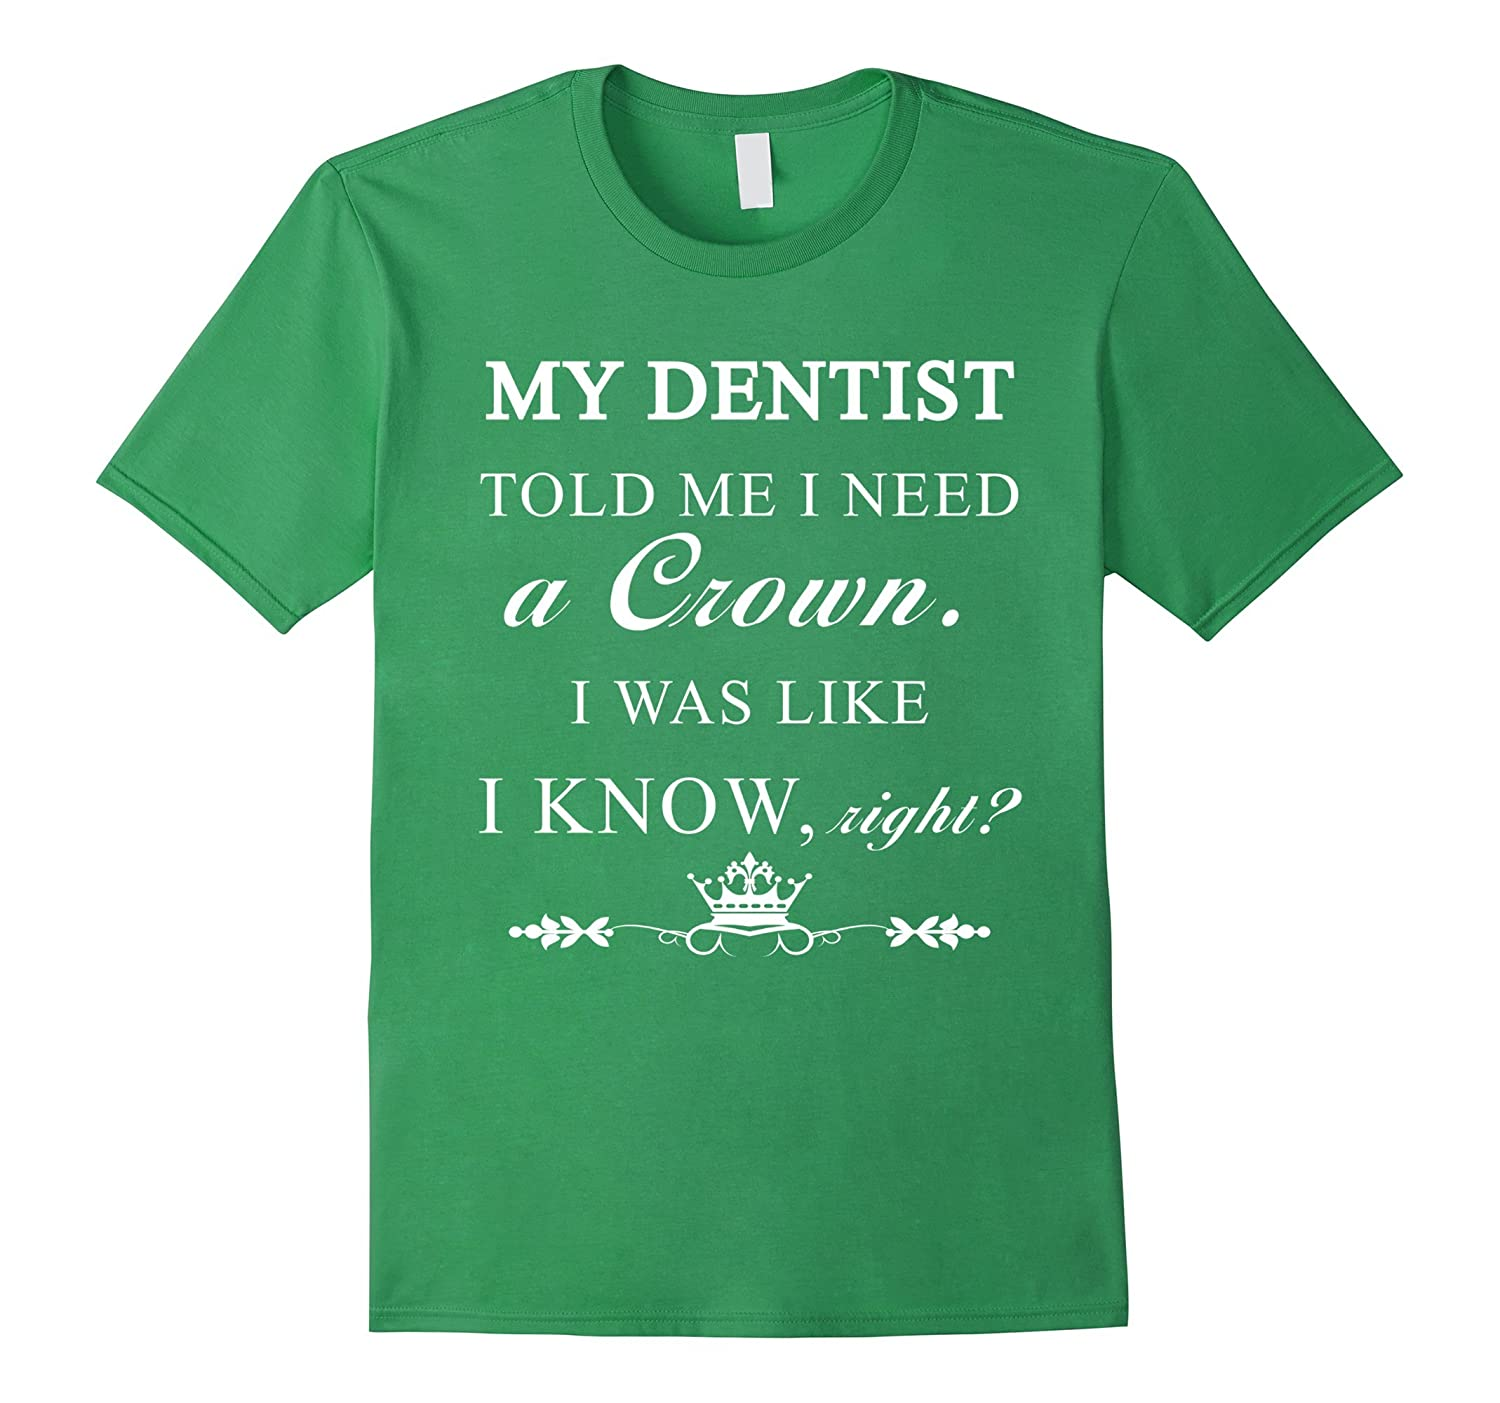 Dentist - My dentist told me I need a crown. I was T-shirt-Art